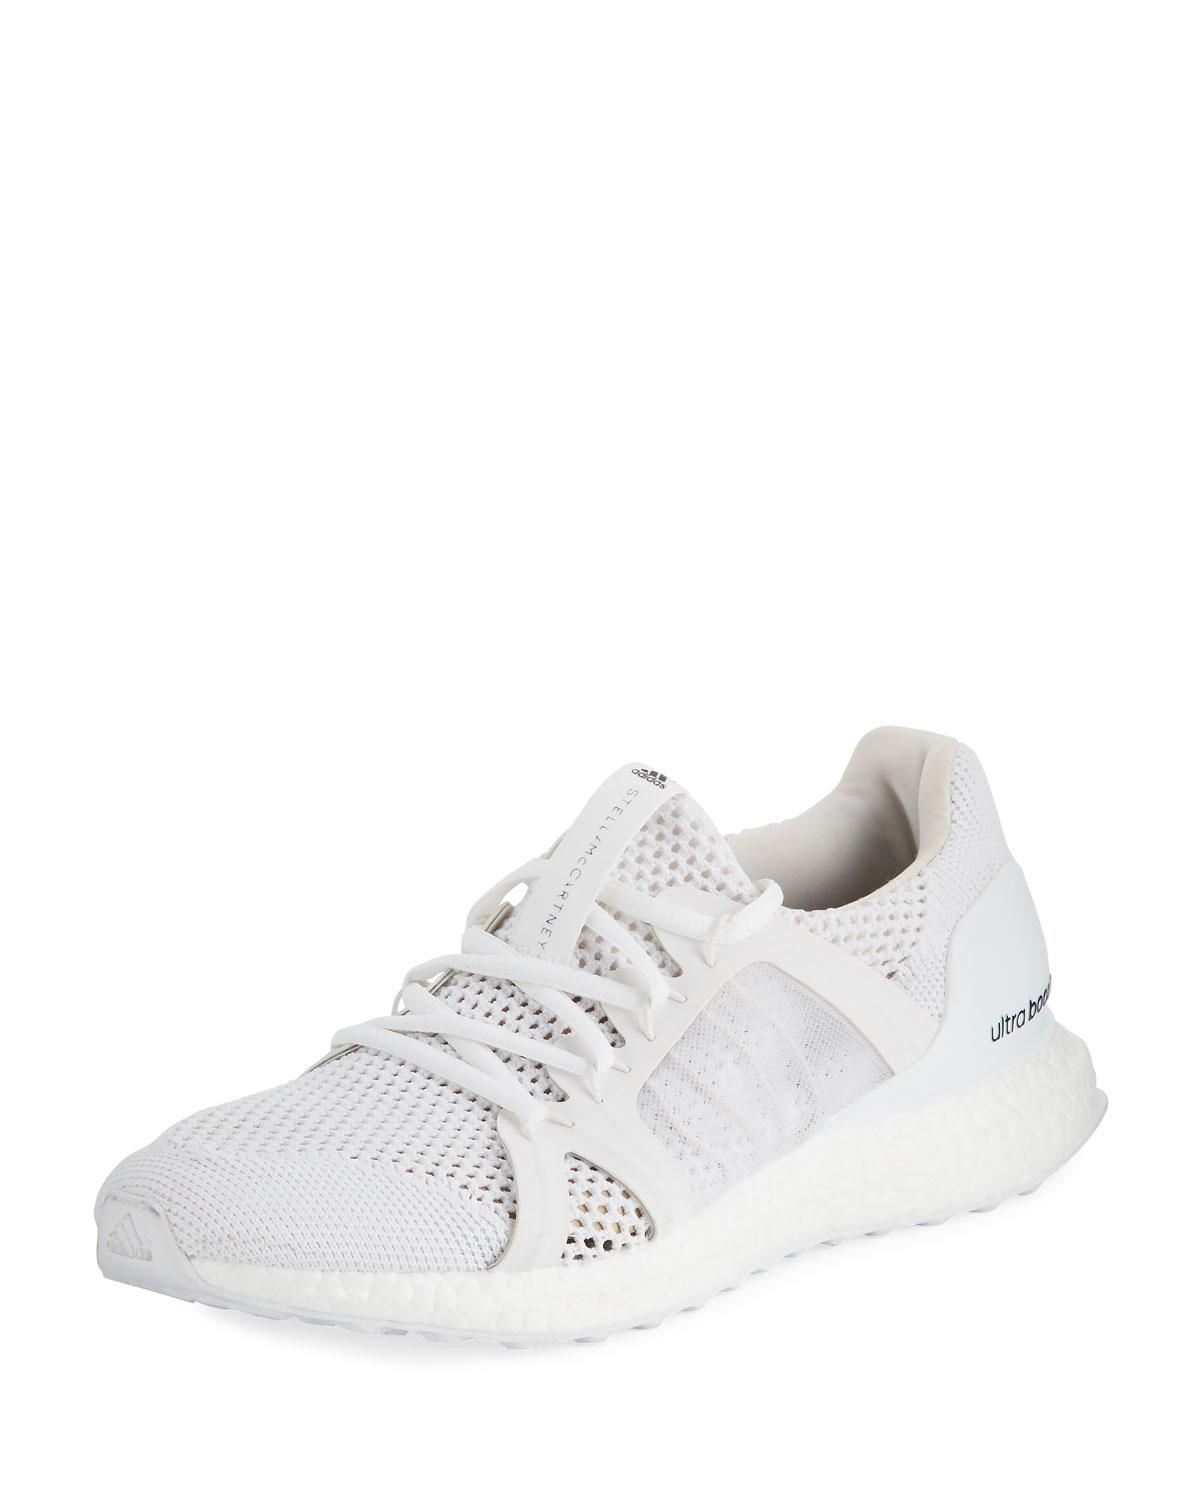 e29ab619ac8f0 adidas By Stella McCartney. Women s White Shoes Trainers Sneakers Ultraboost